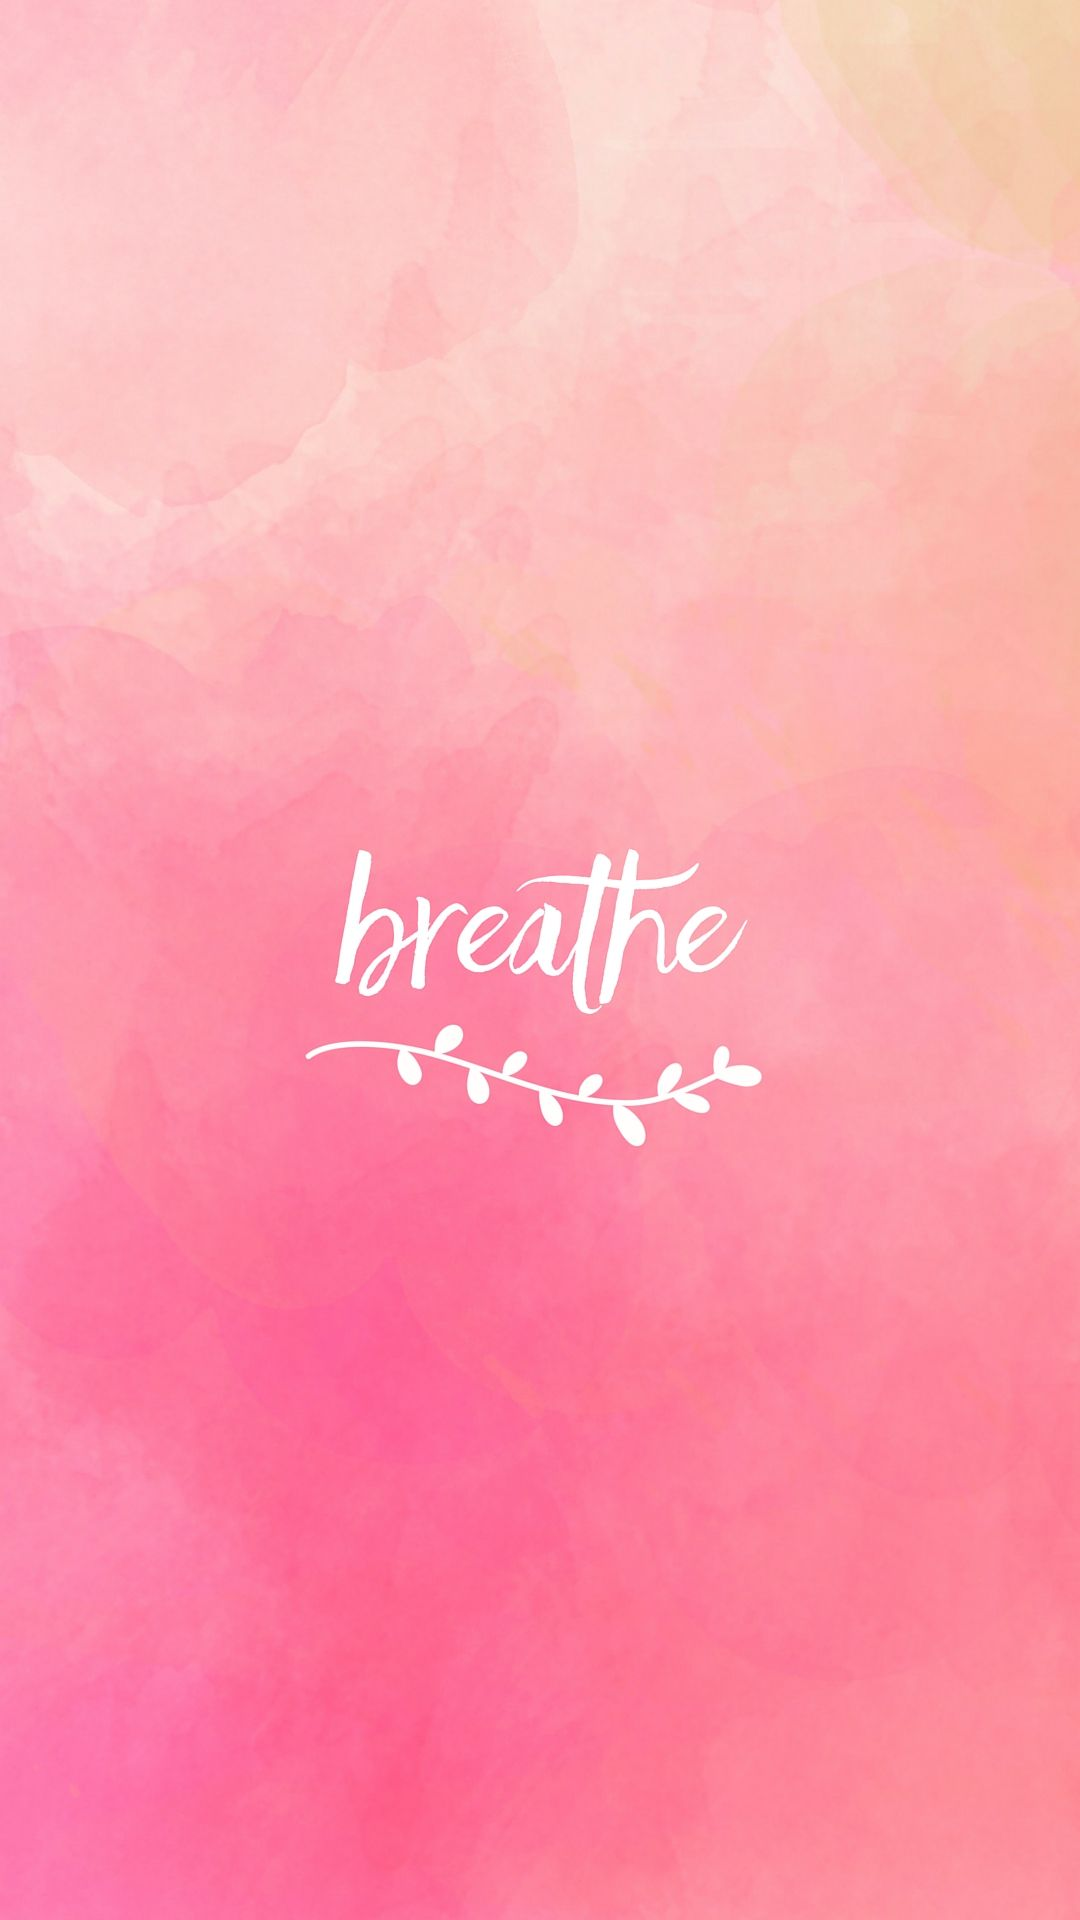 Breathe  Phone backgrounds  Quotes, Wallpaper quotes, Screen wallpaper